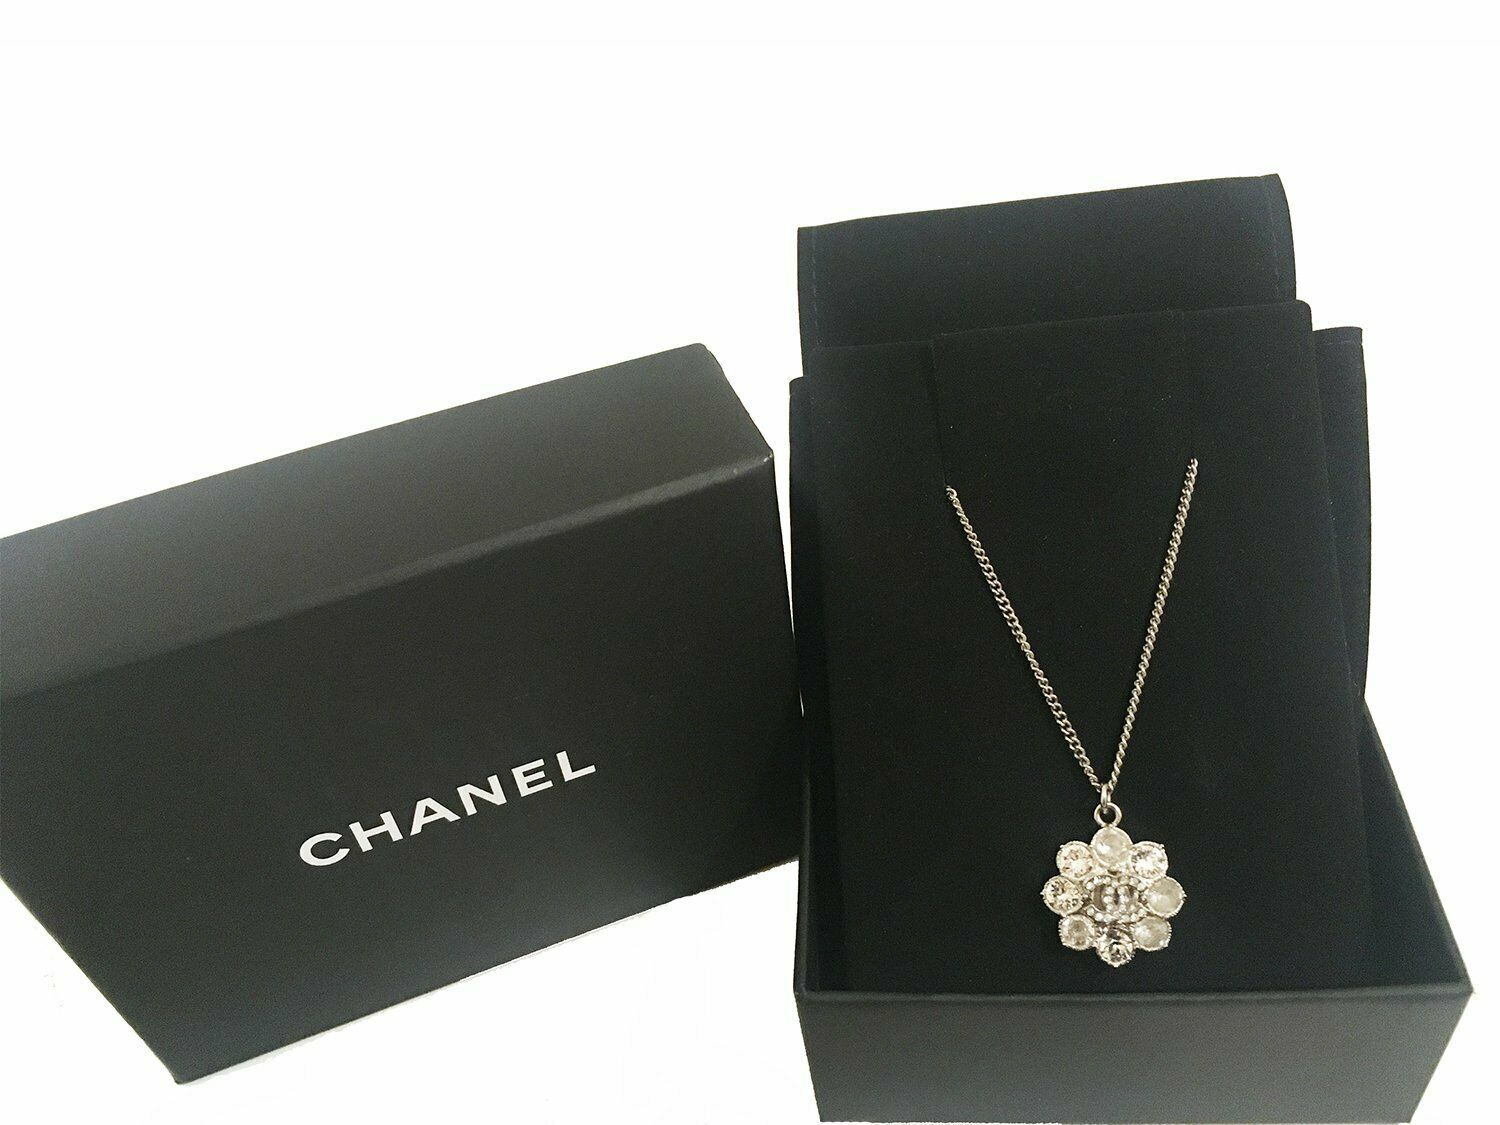 Chanel - Crystal Camellia Flower Pendant - Silver